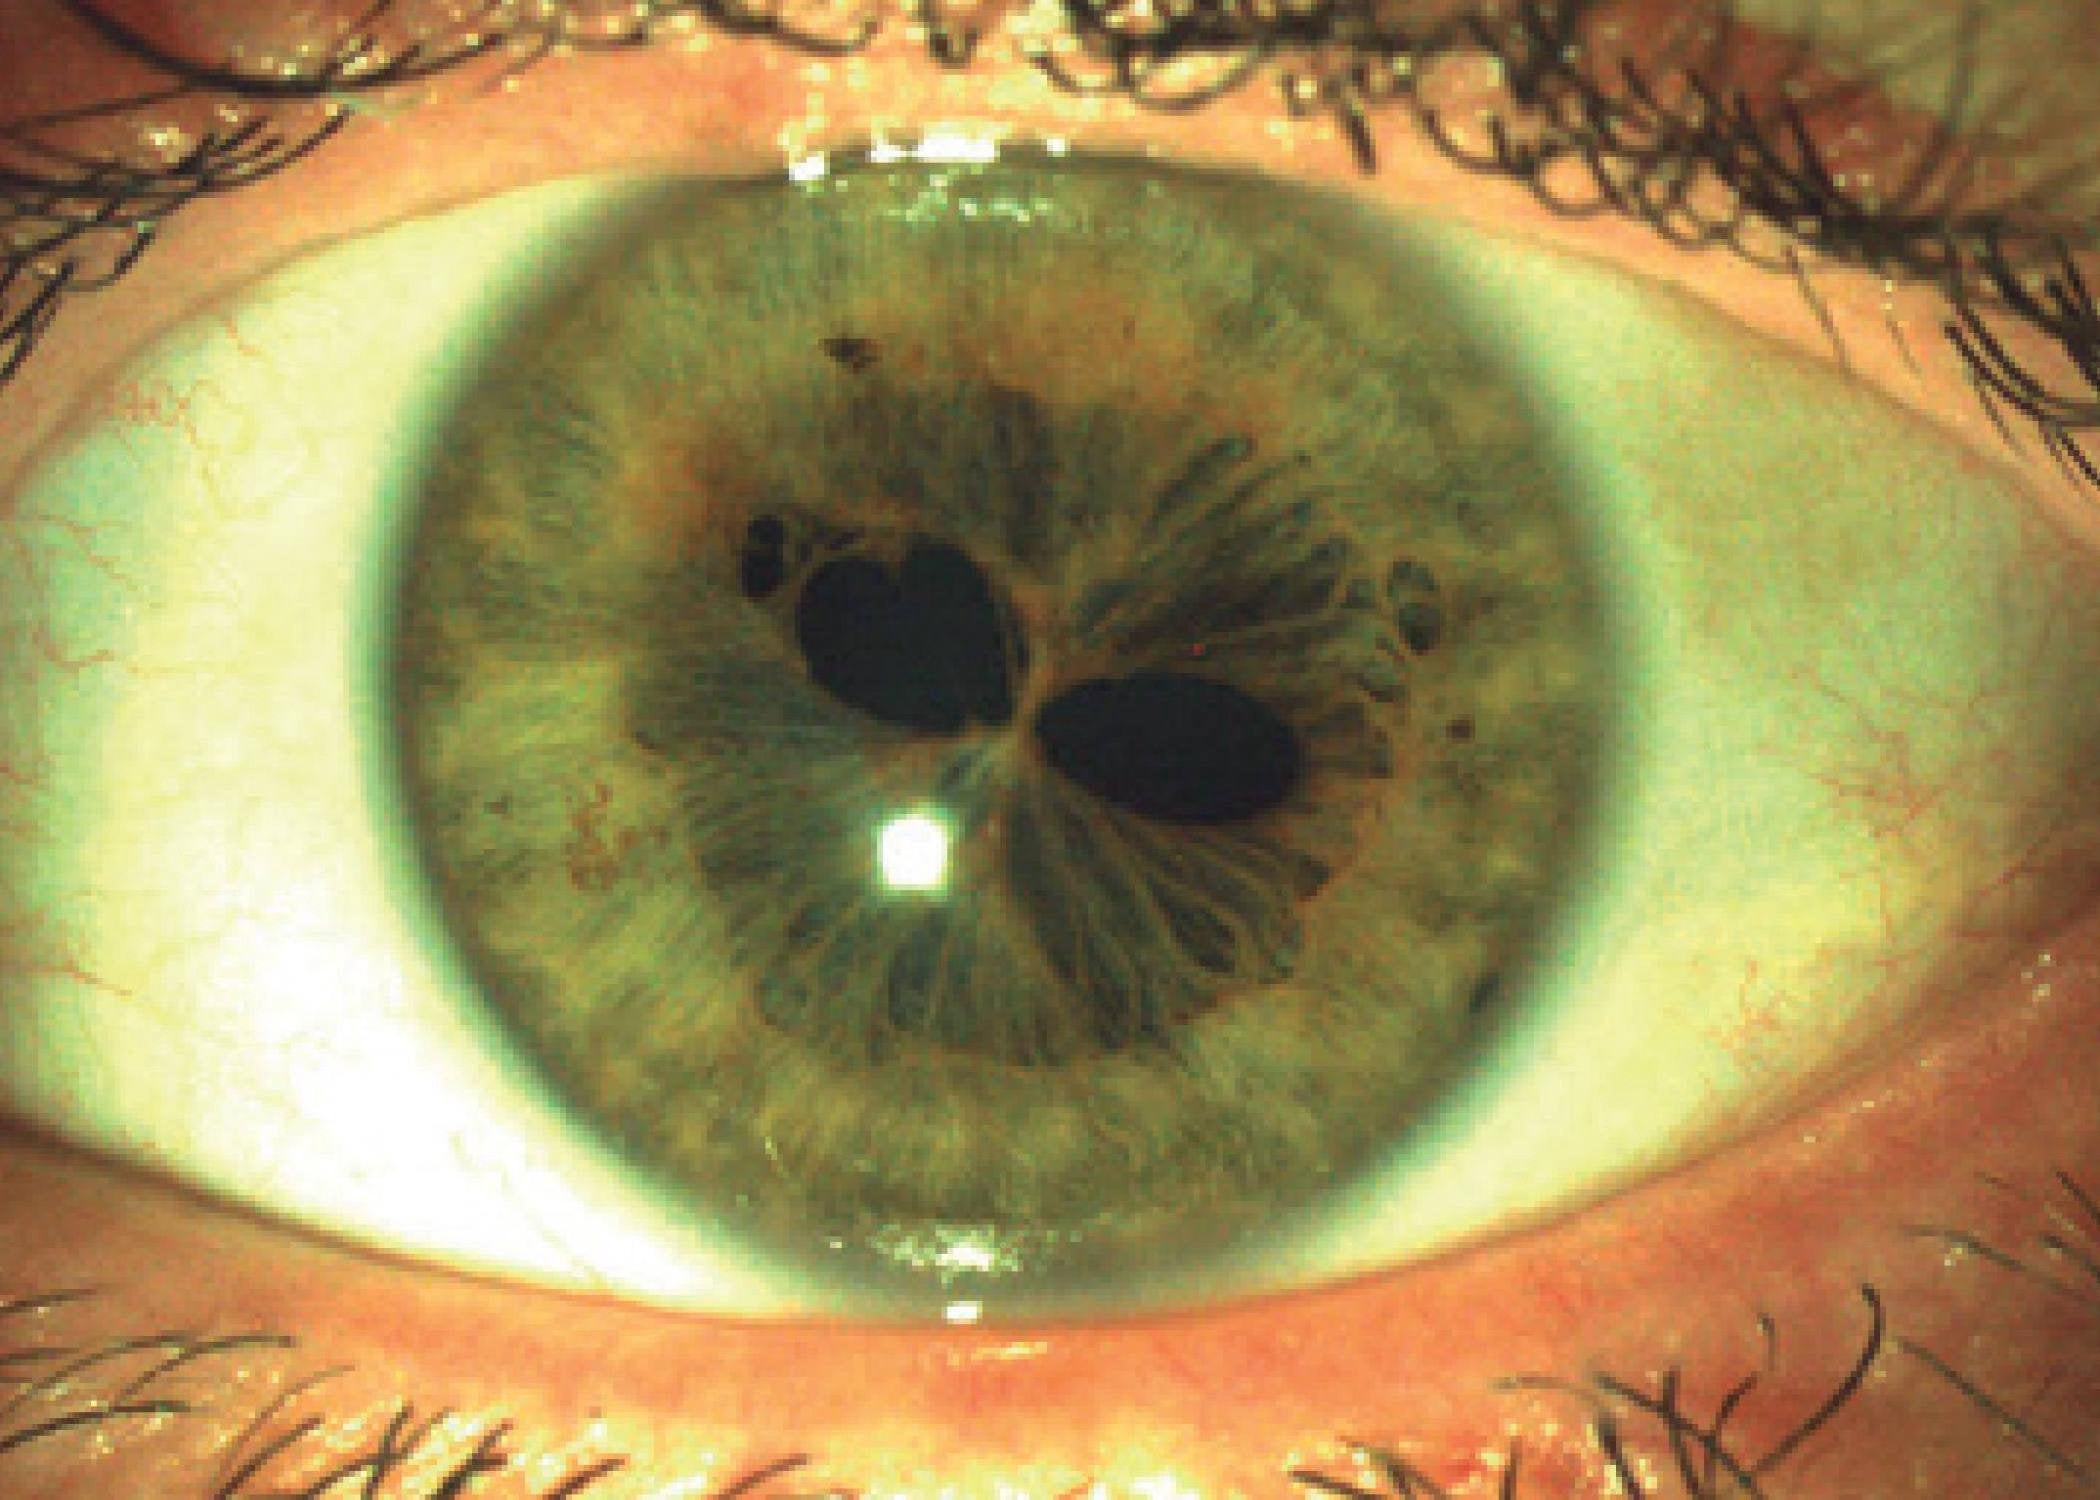 Headline: Two Pupils in One Eye? That's what Polycoria is and It's  Absolutely Insane! | by Optometry Daily | Medium